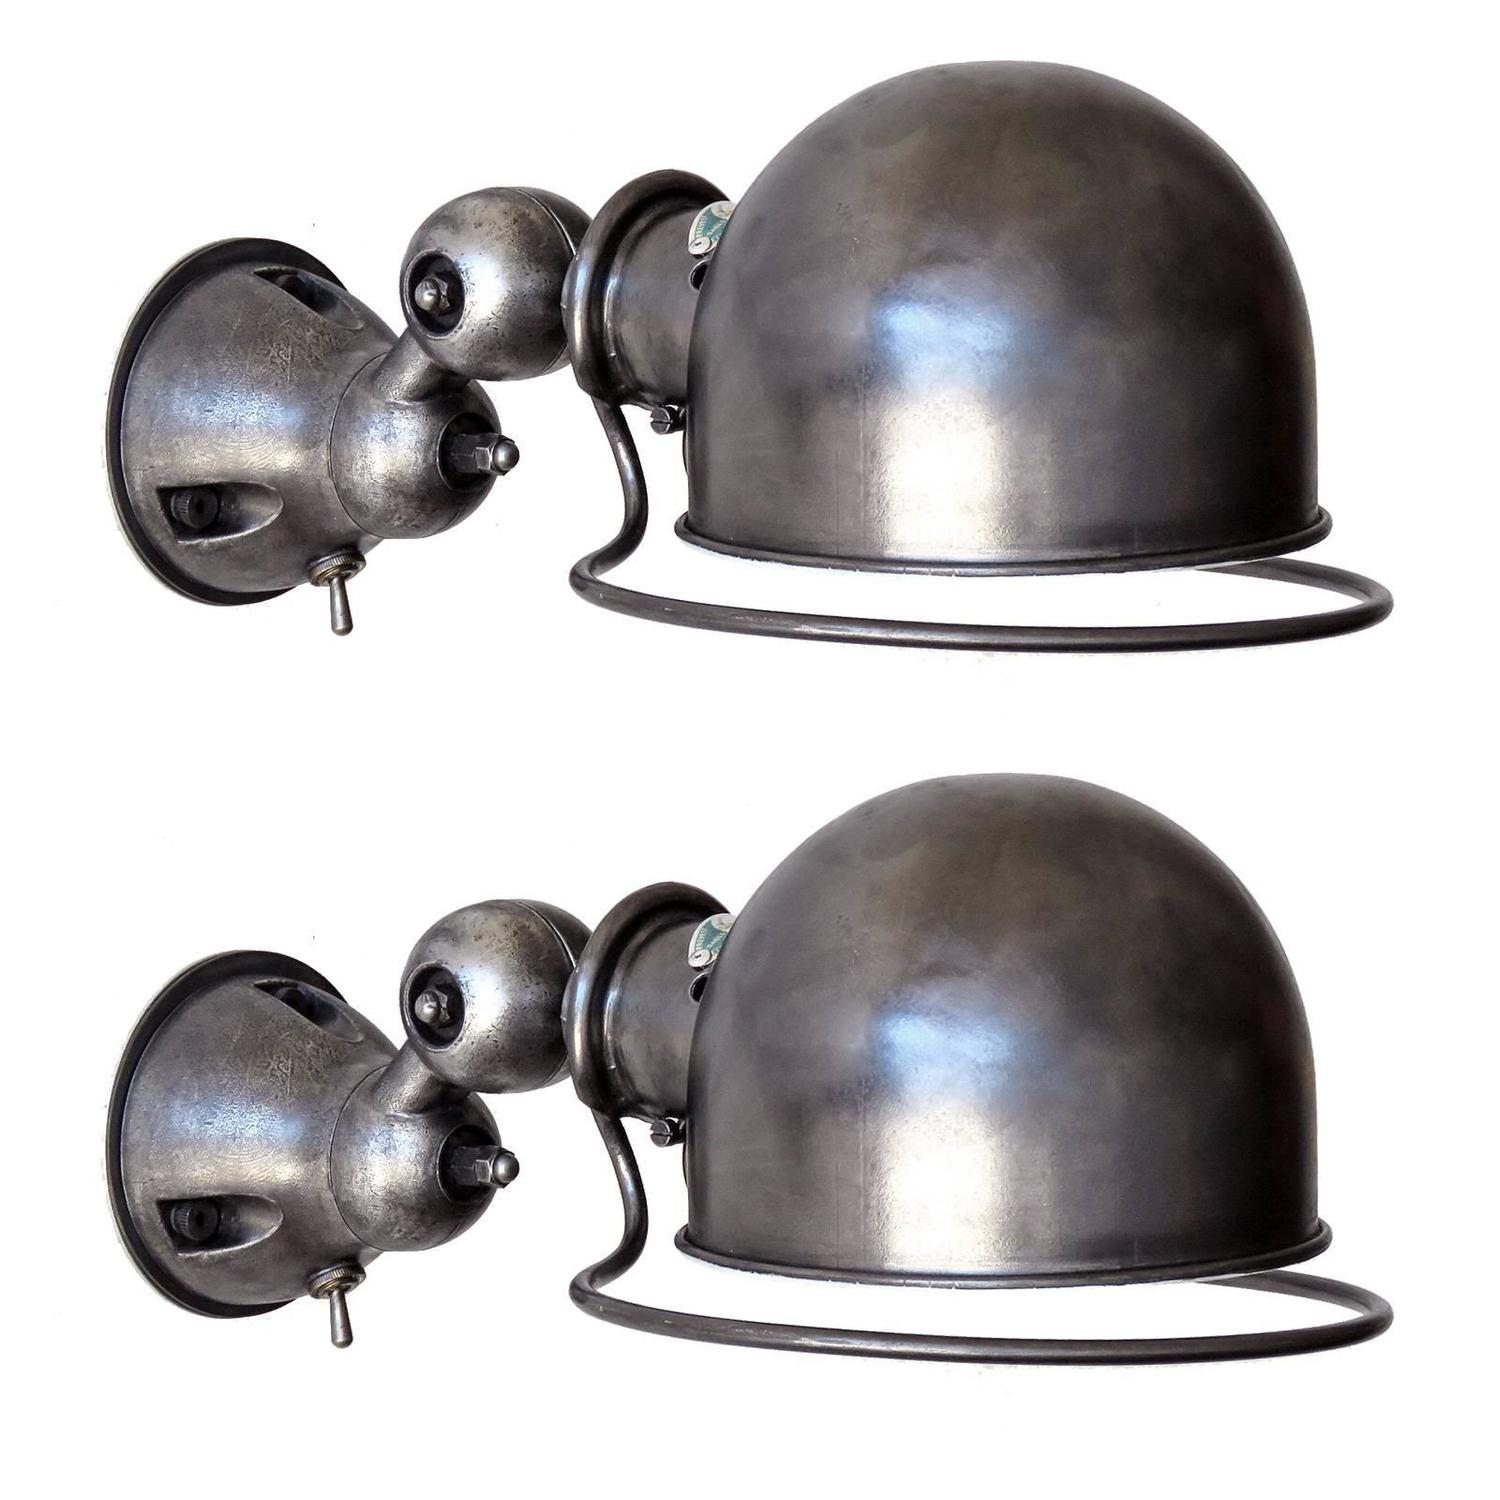 pair of jielde wall lights for sale at 1stdibs. Black Bedroom Furniture Sets. Home Design Ideas